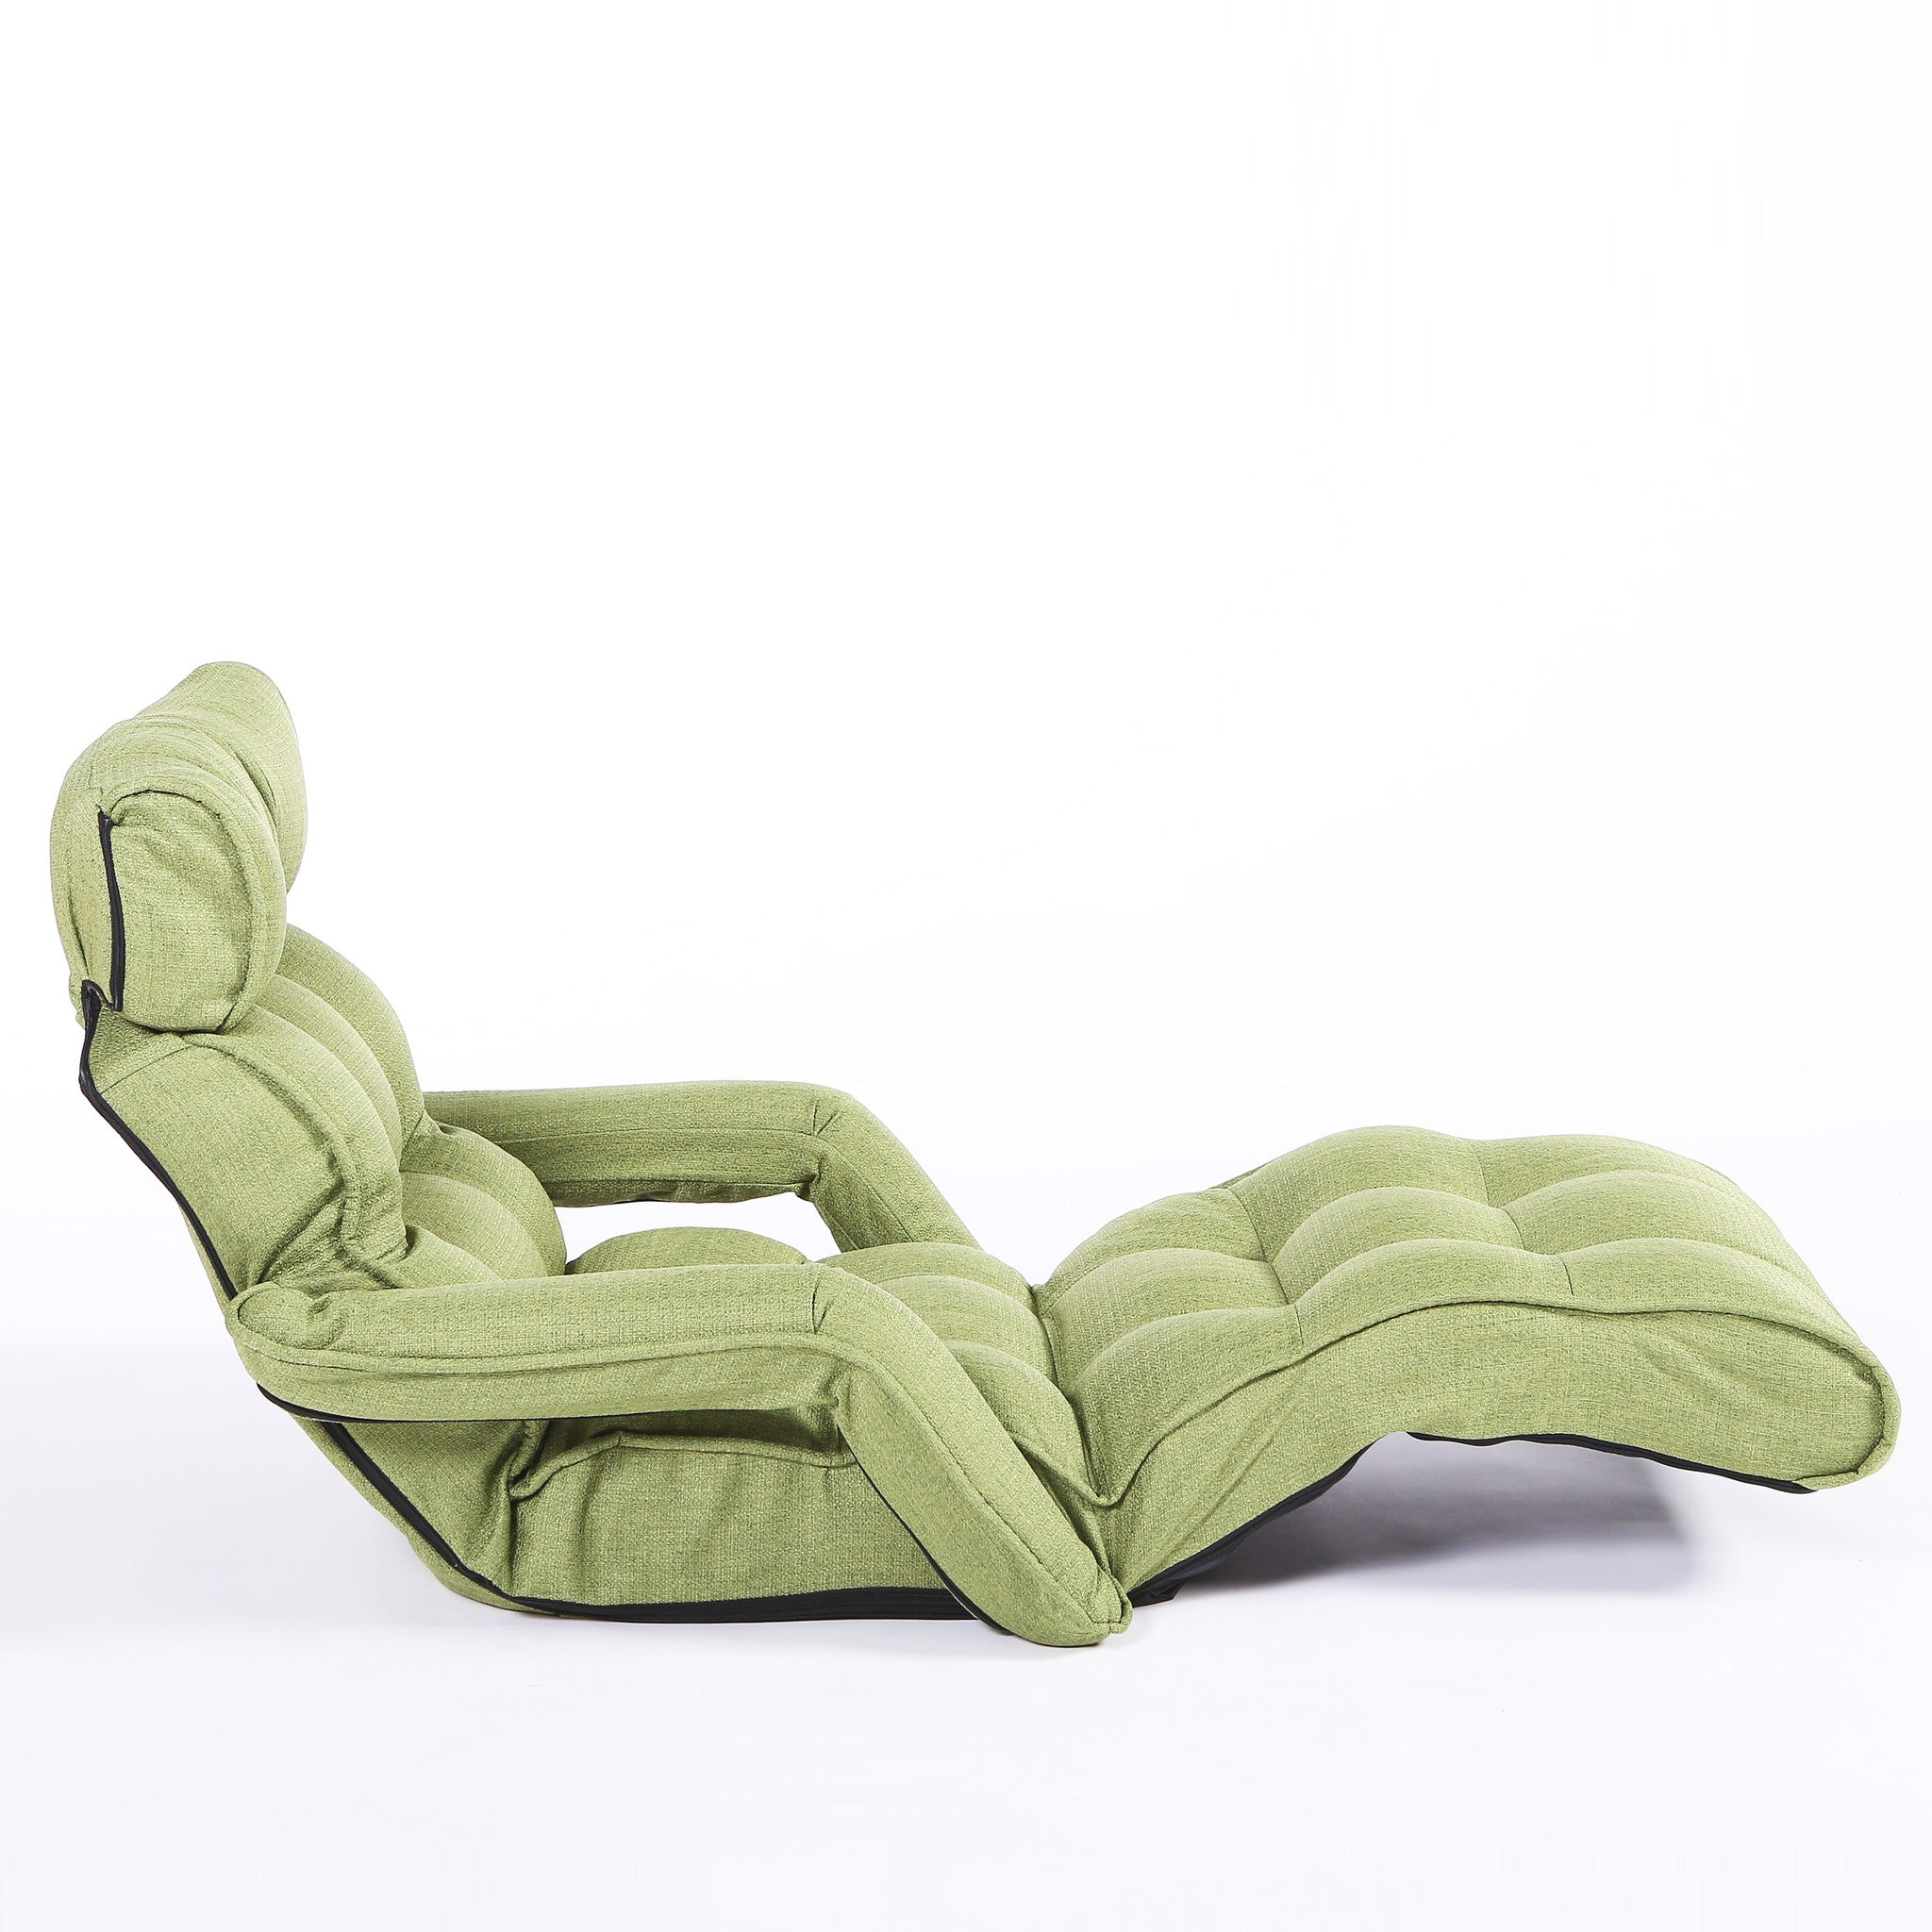 Pro Green Floor Sofa Chair Recliner with Armrest for Floor Seating